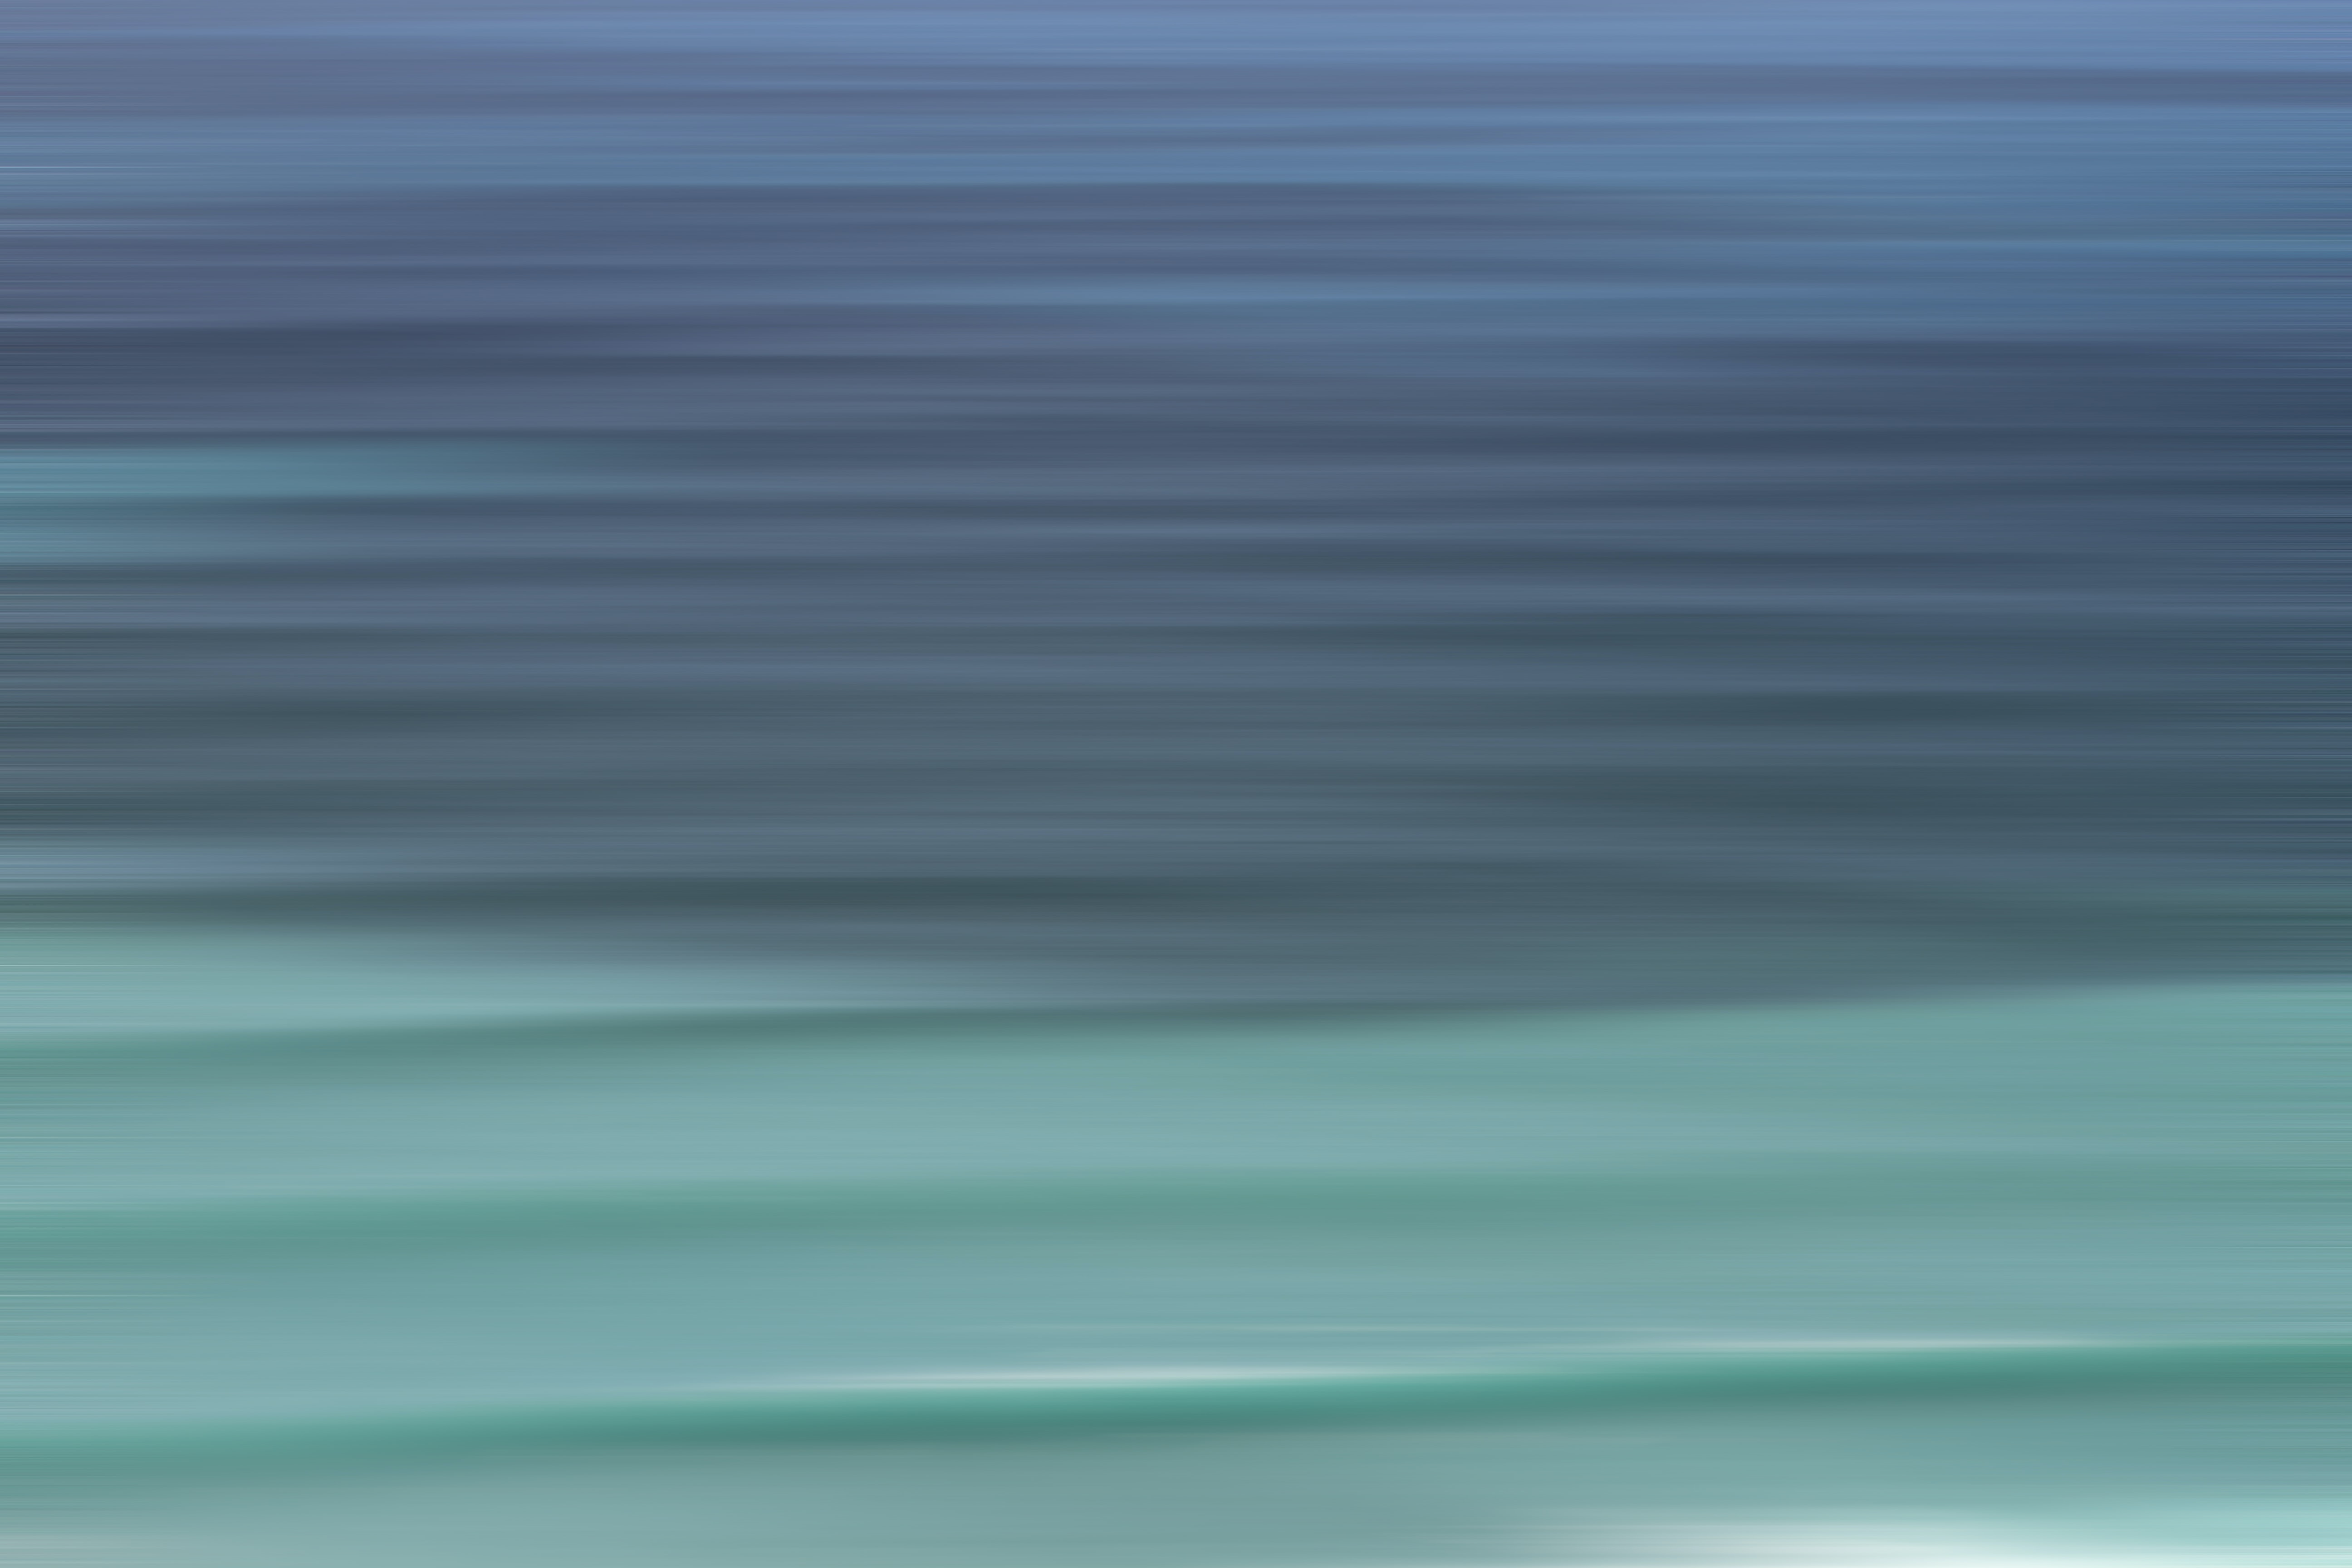 A blurred ocean image.